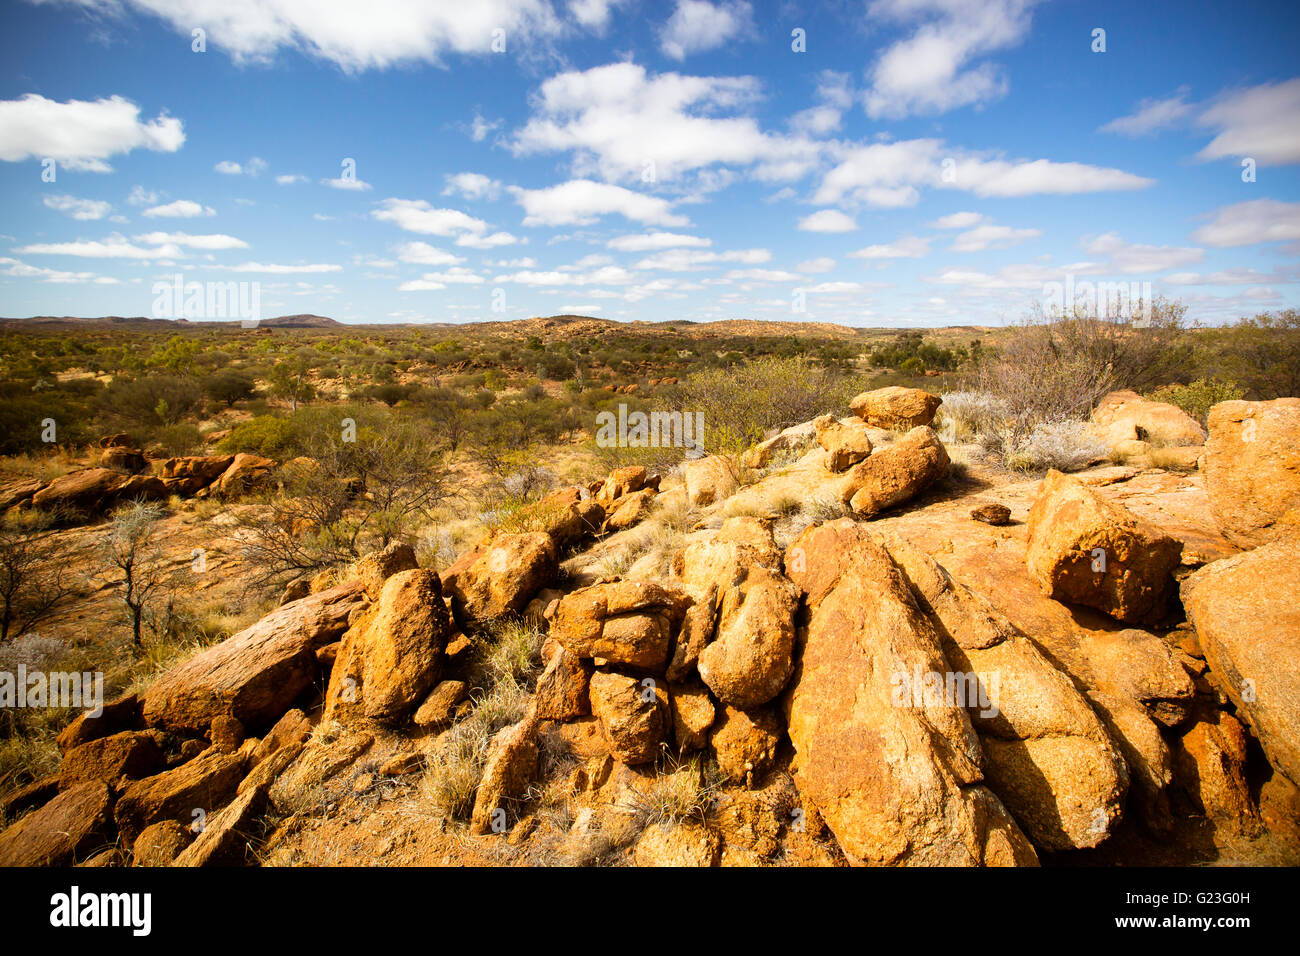 A view towards the West Macdonnell Ranges from near the Old Telegraph Station in Alice Springs, Northern Territory, - Stock Image